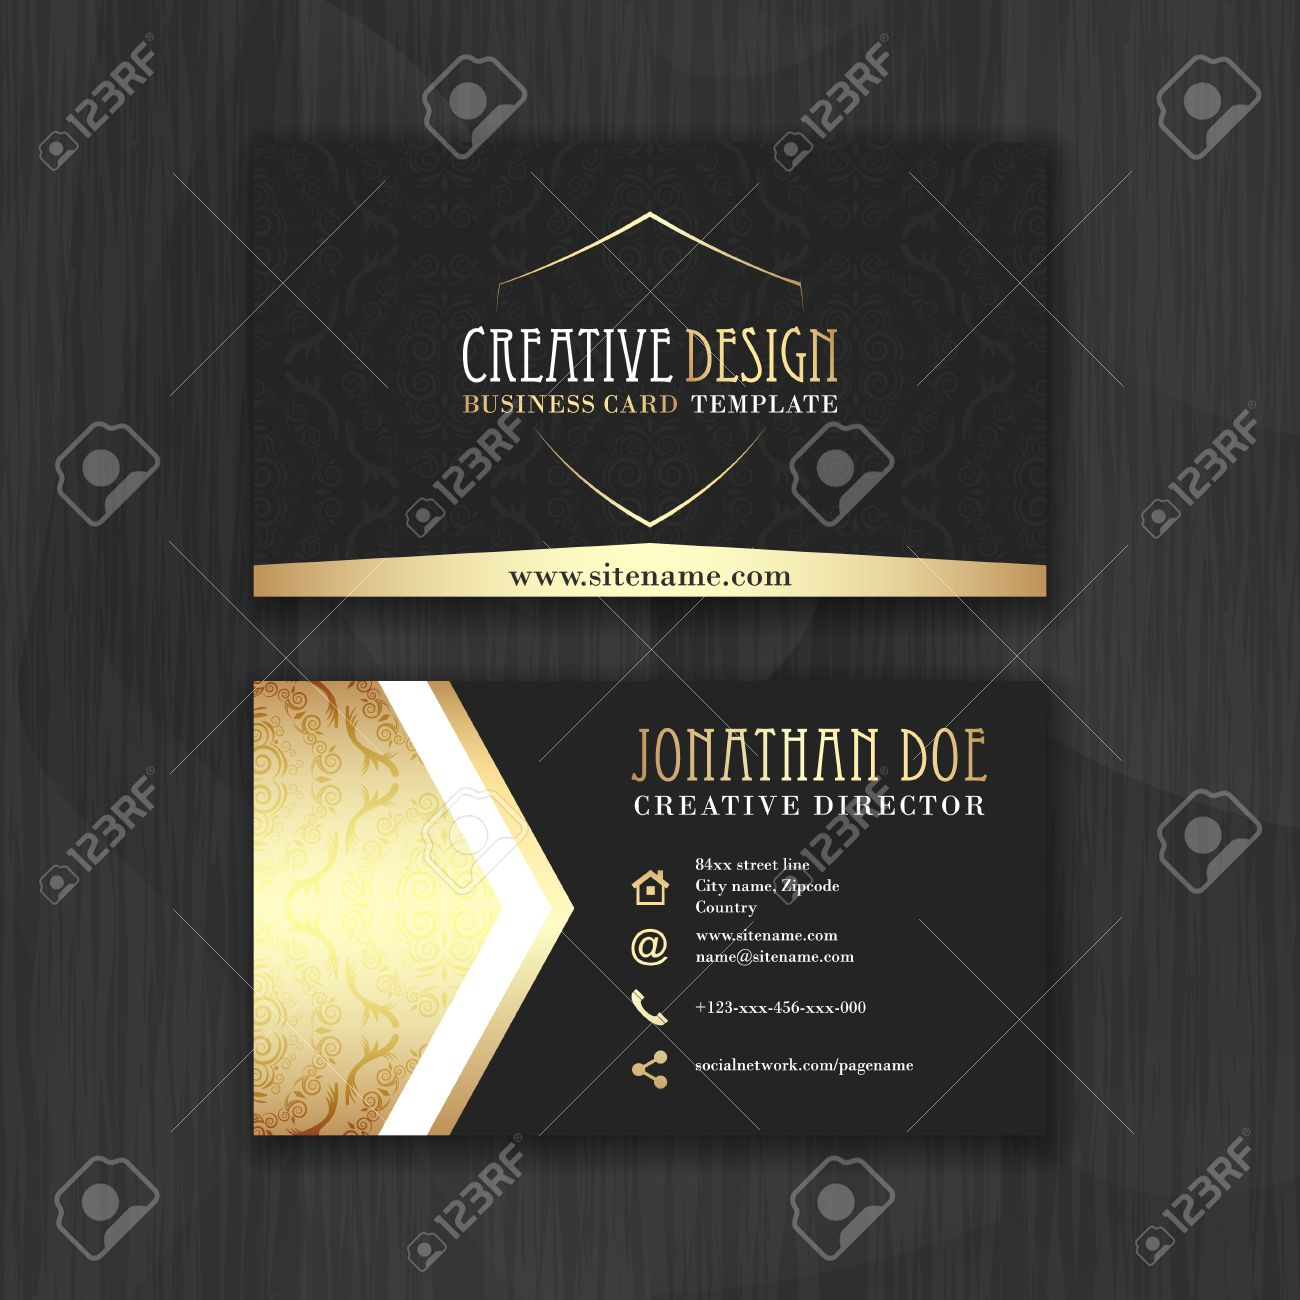 Gold and black horizontal business card template design for gold and black horizontal business card template design for personal or business use with front accmission Choice Image